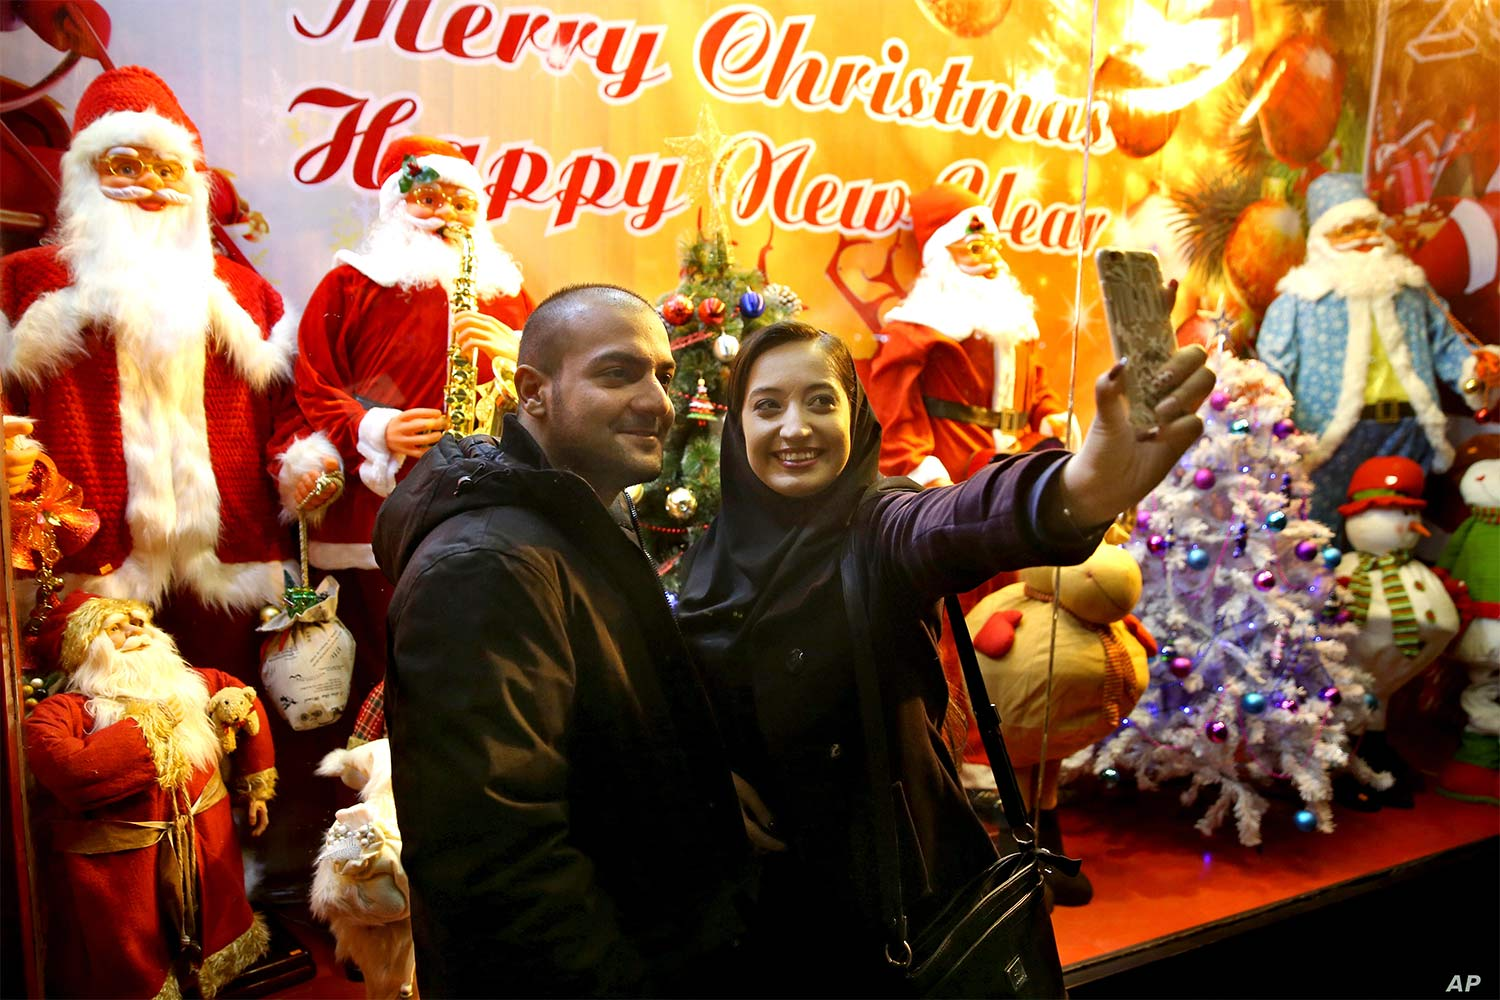 Christmas in Iran